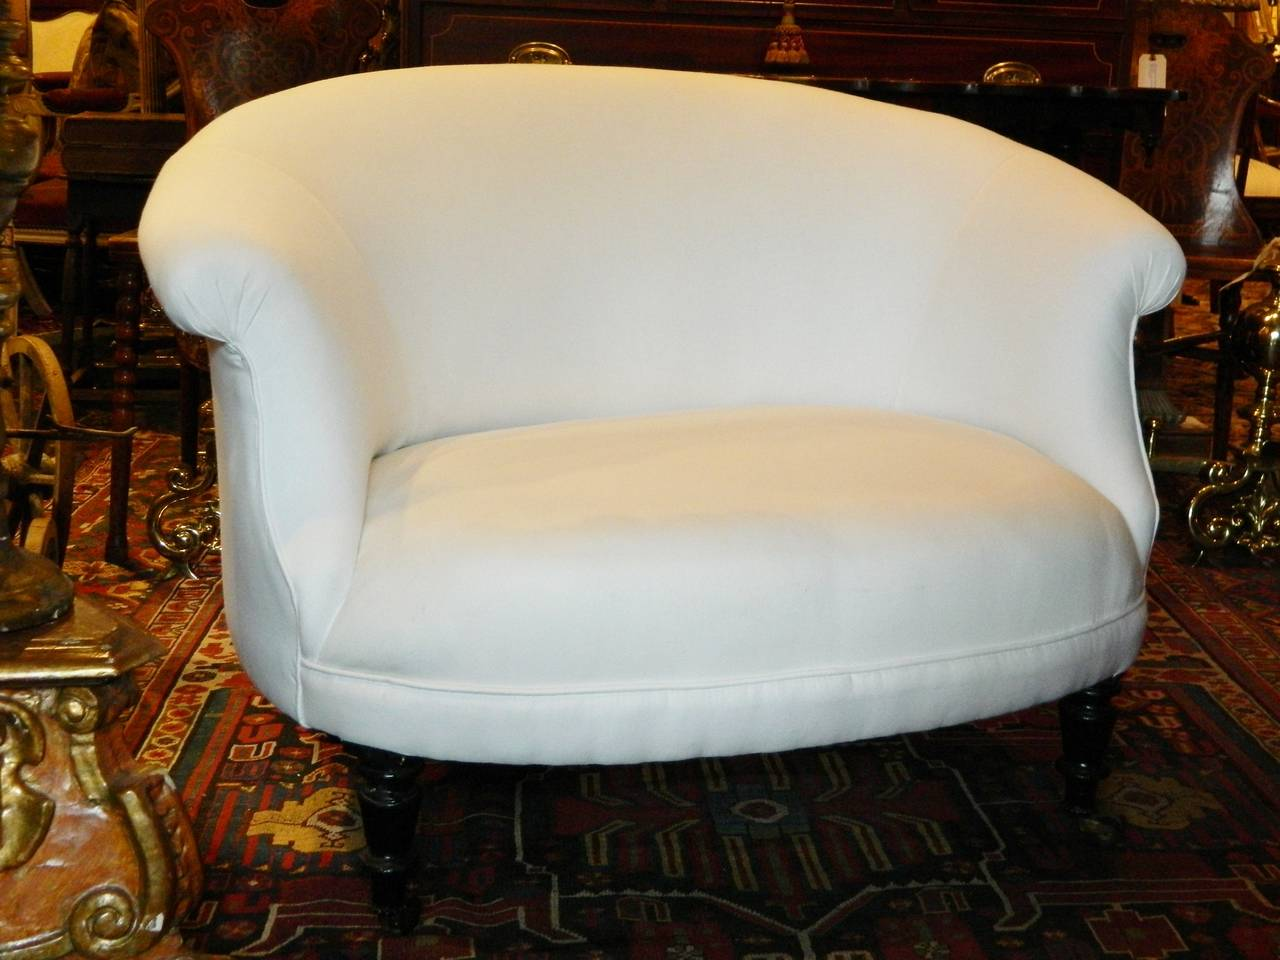 A French Napoleon III settee having continuous arched back raised on turned legs with casters, circa 1880. New muslin upholstery.